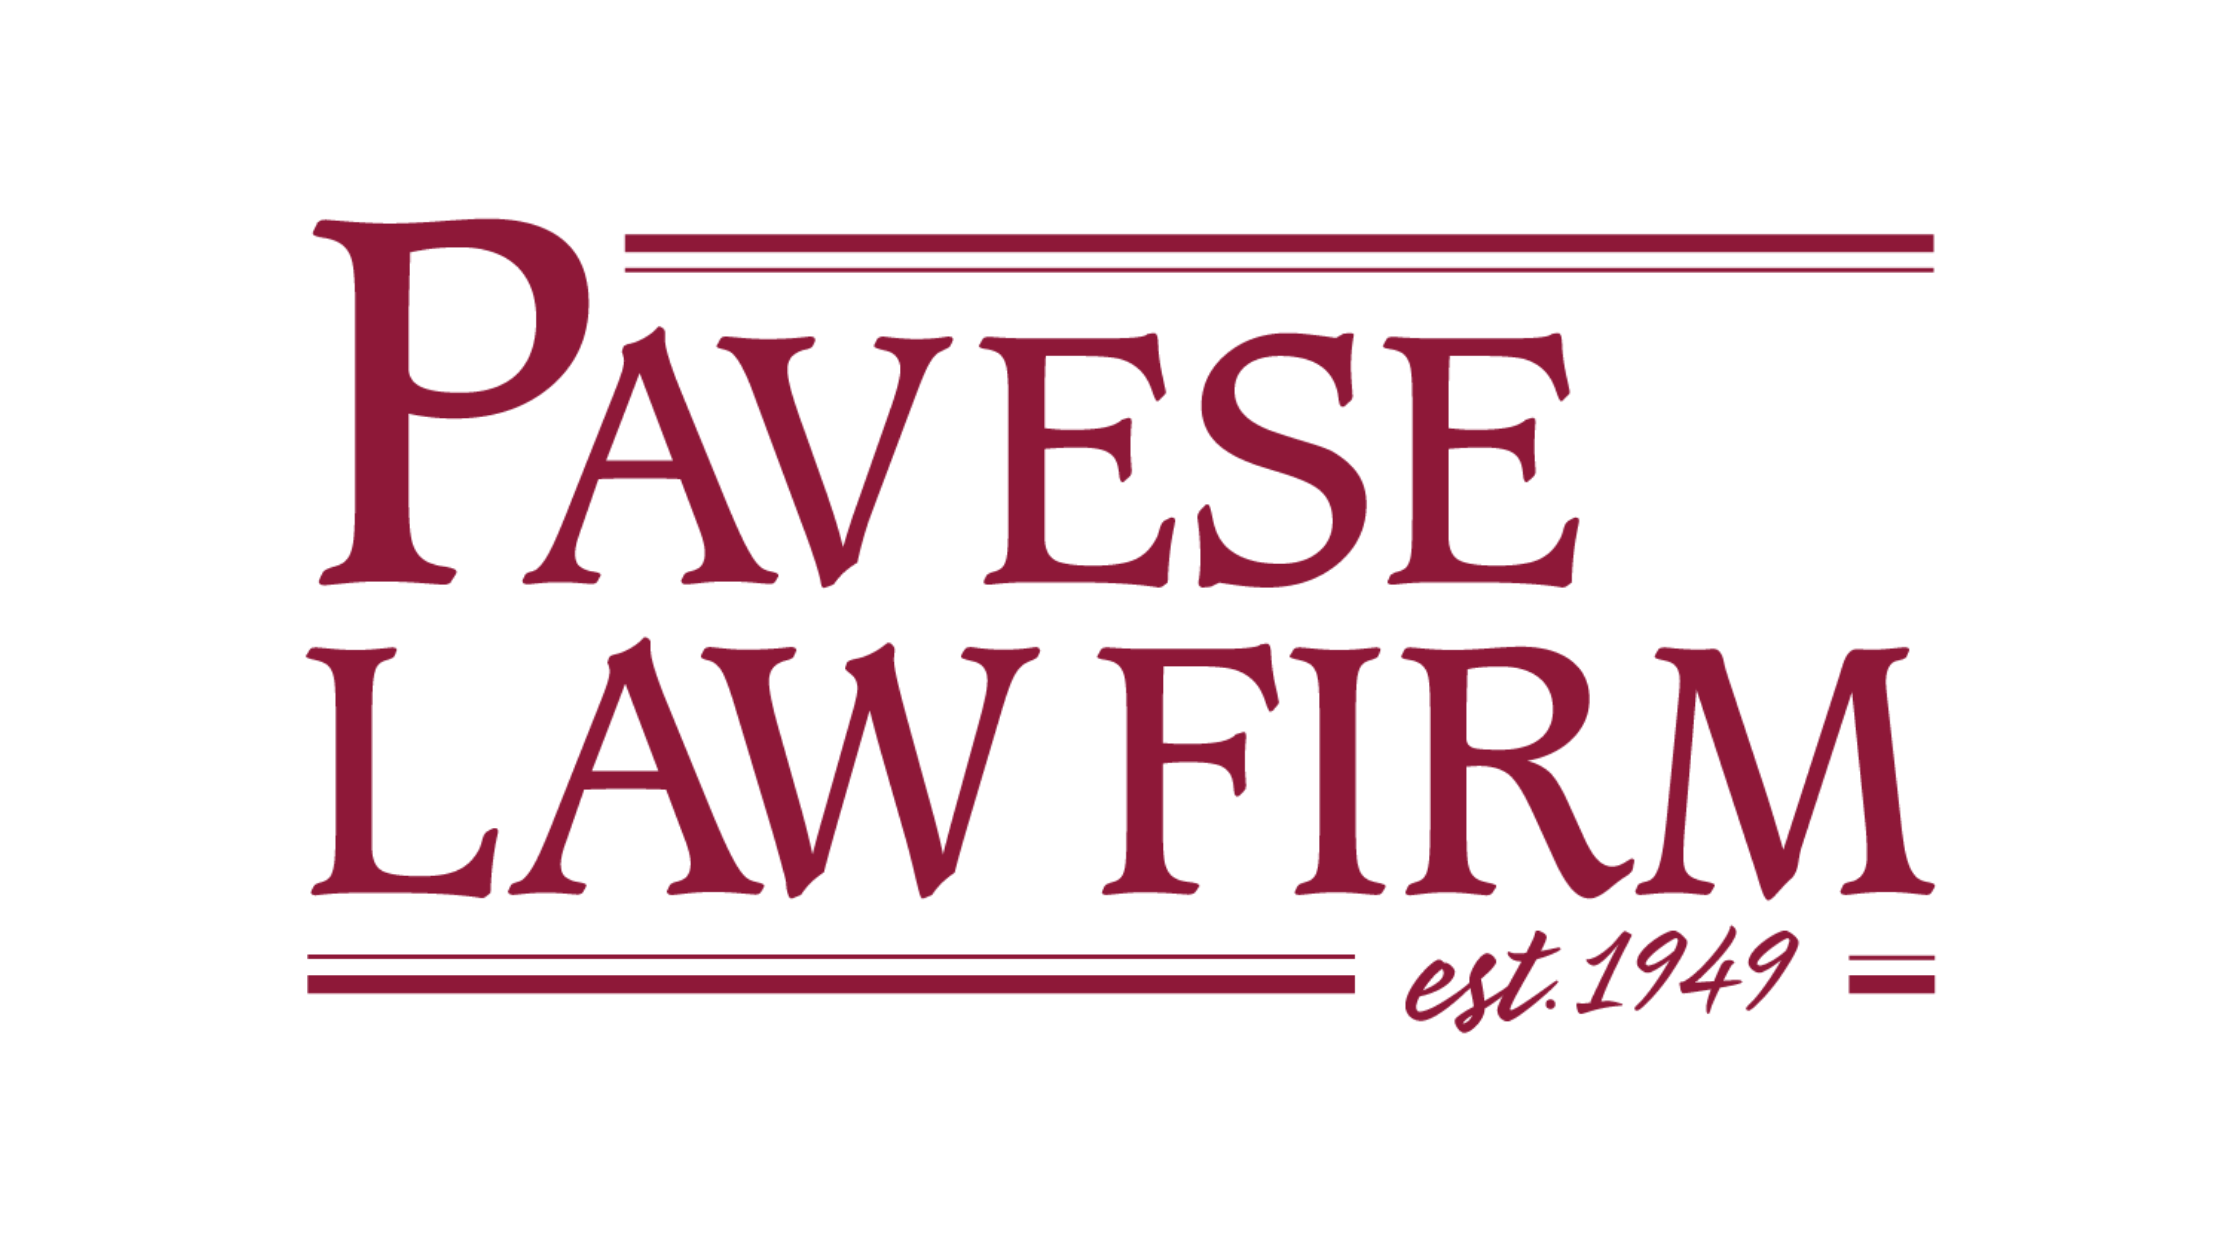 """Pavese attorney among """"2021 Top Lawyers"""" honored by Naples Illustrated"""